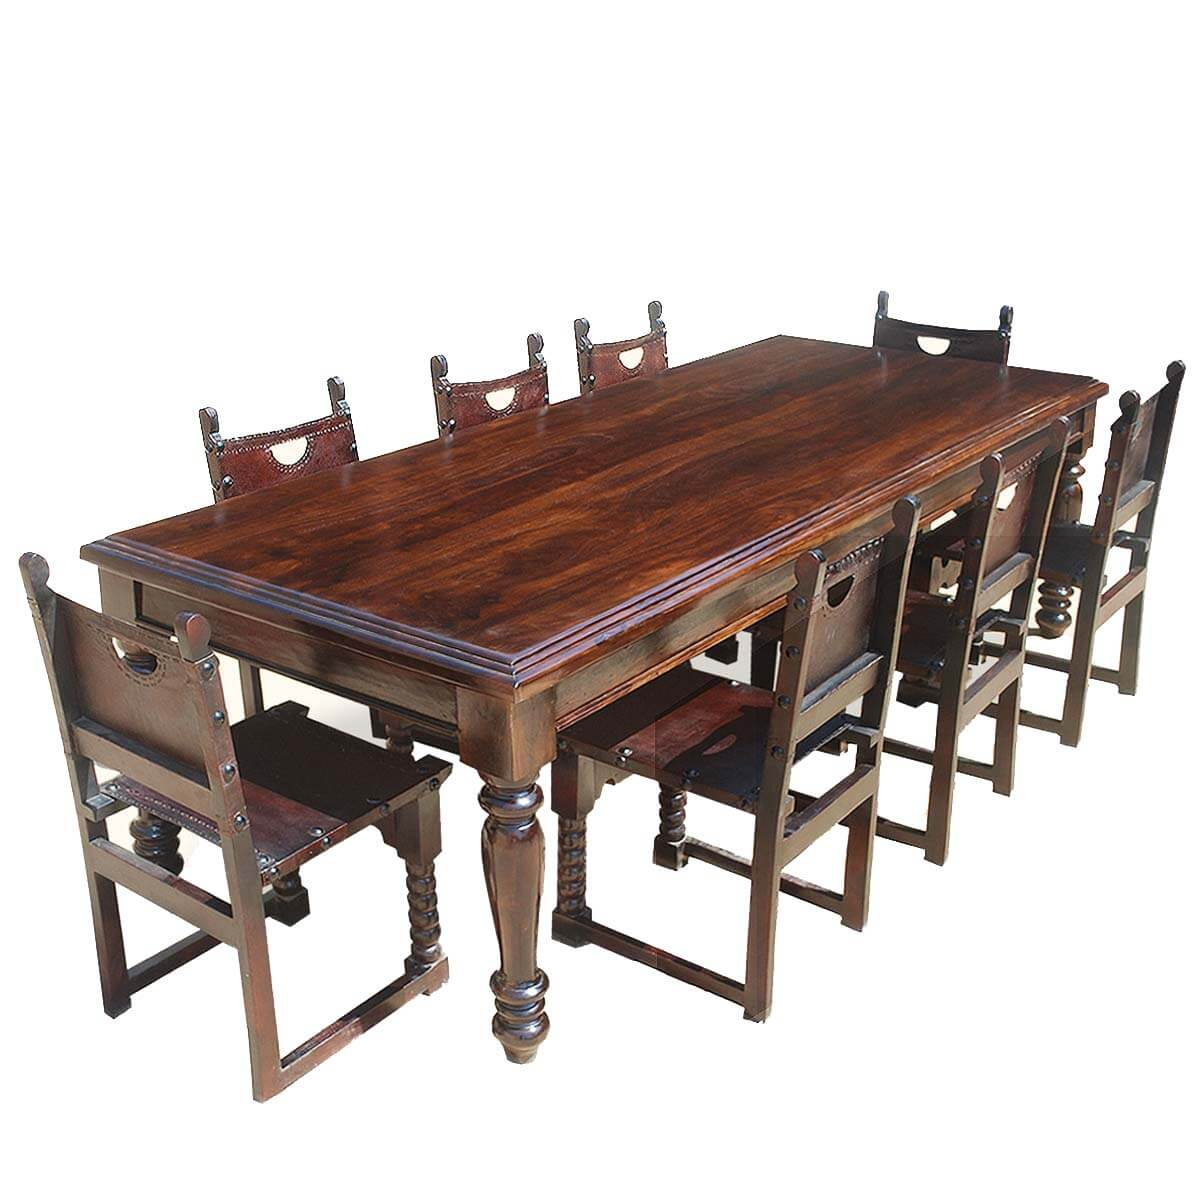 Large rustic solid wood dining room table w 8 leather for Dining room table for 8